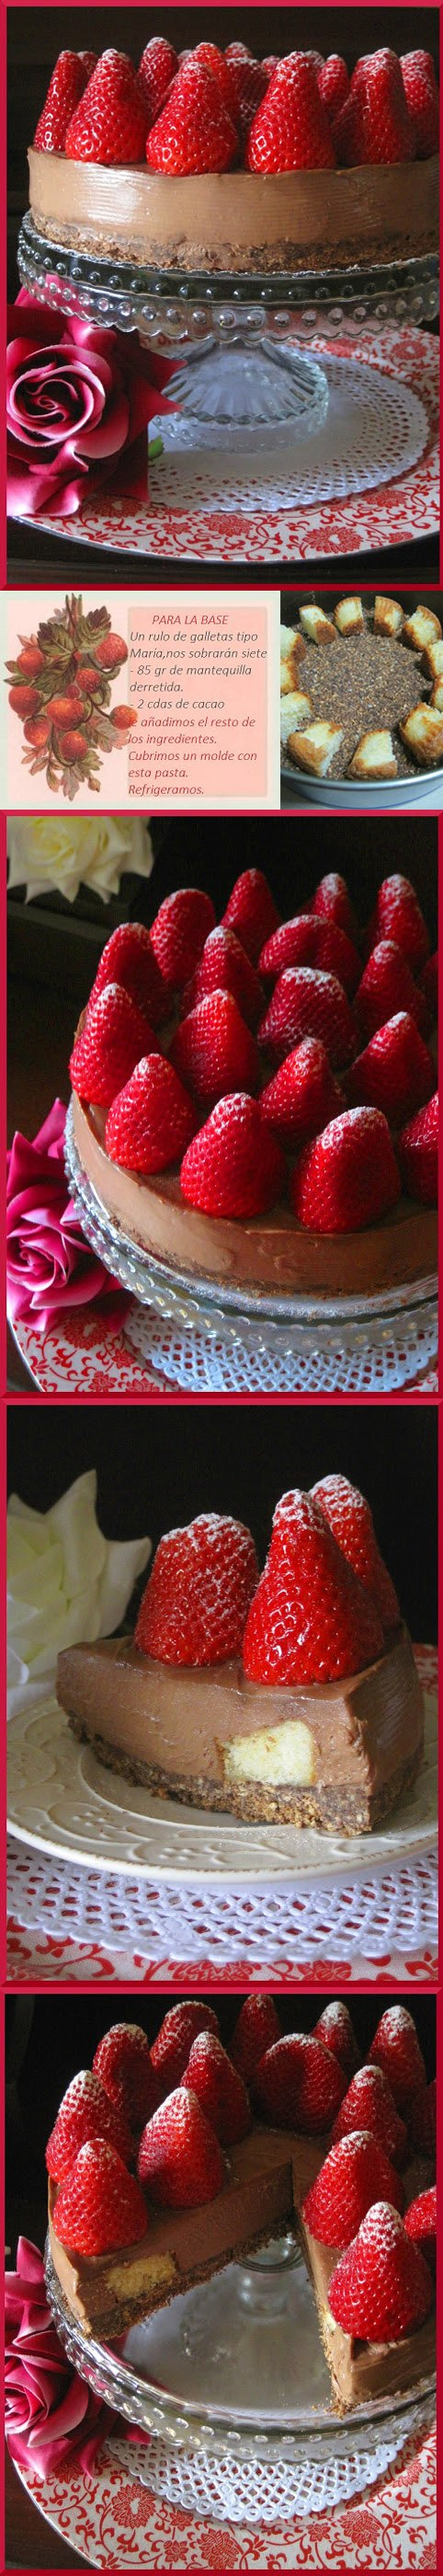 cheesecake-chocolate-fresas-pecados-reposteria-1